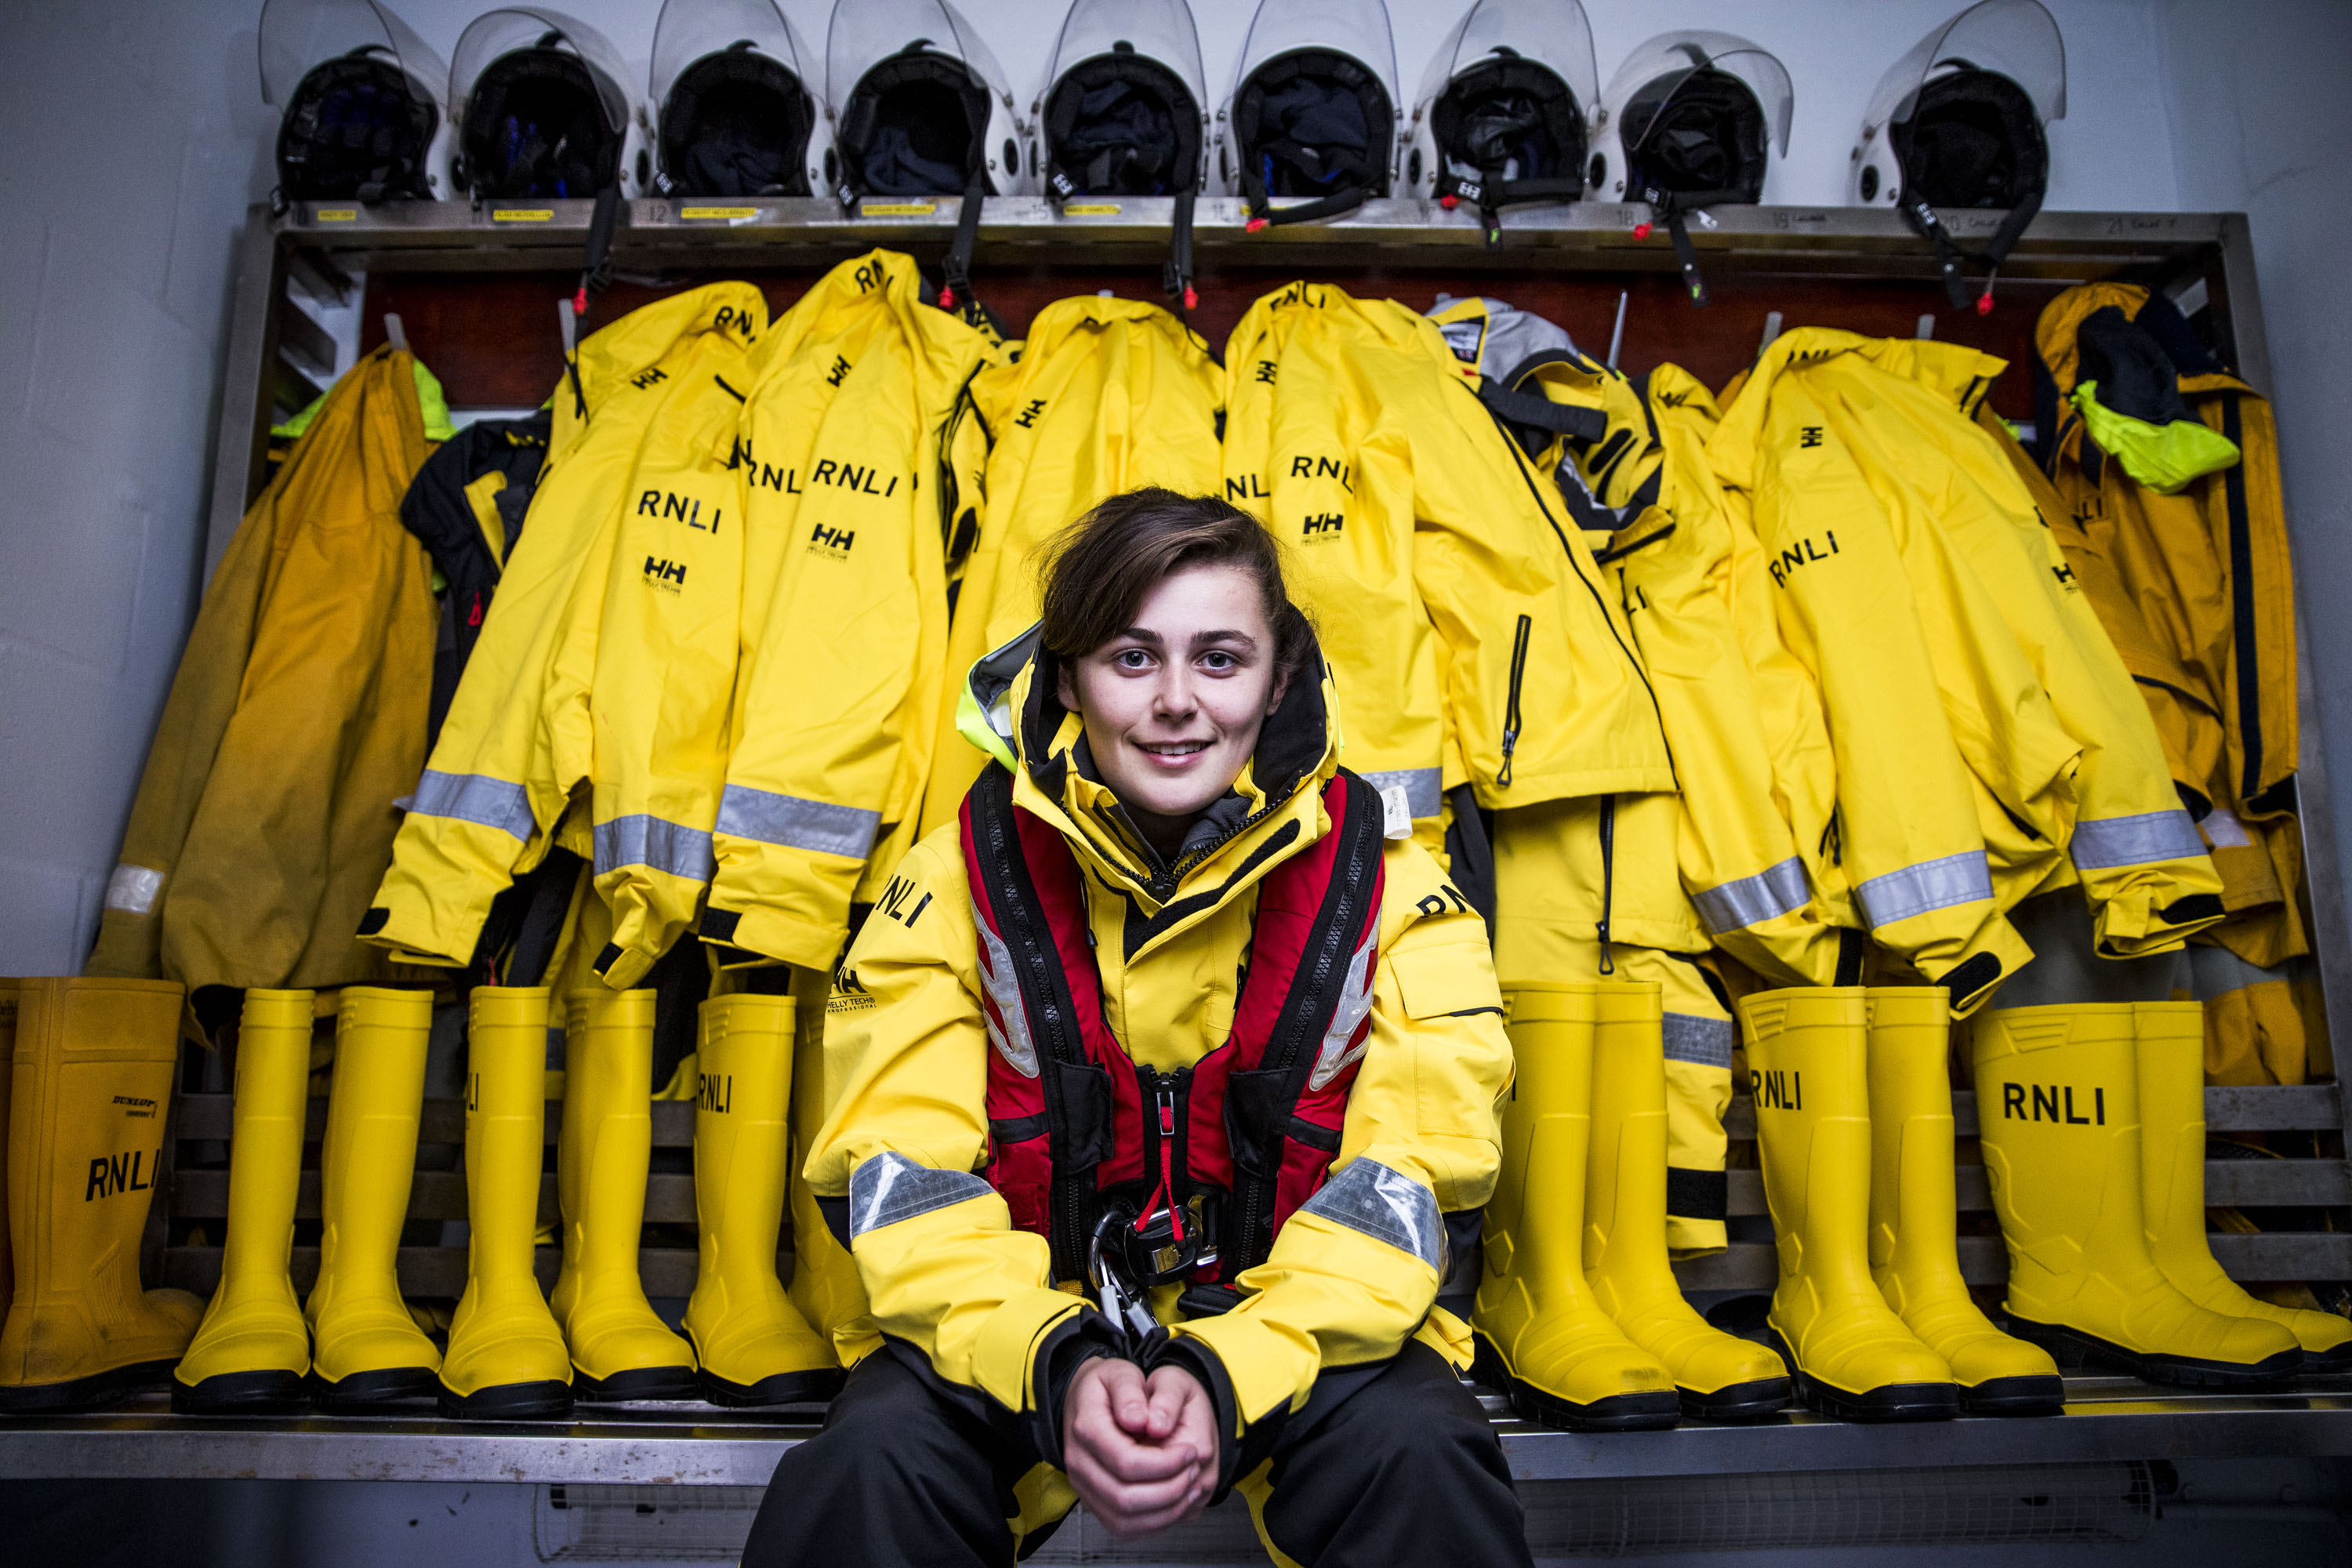 2nd Cox of the Girvan Lifeboat Gary McGarvie's daughter Luciana, 17, is the youngest member of the Girvan lifeboat crew. (Jamie Williamson)